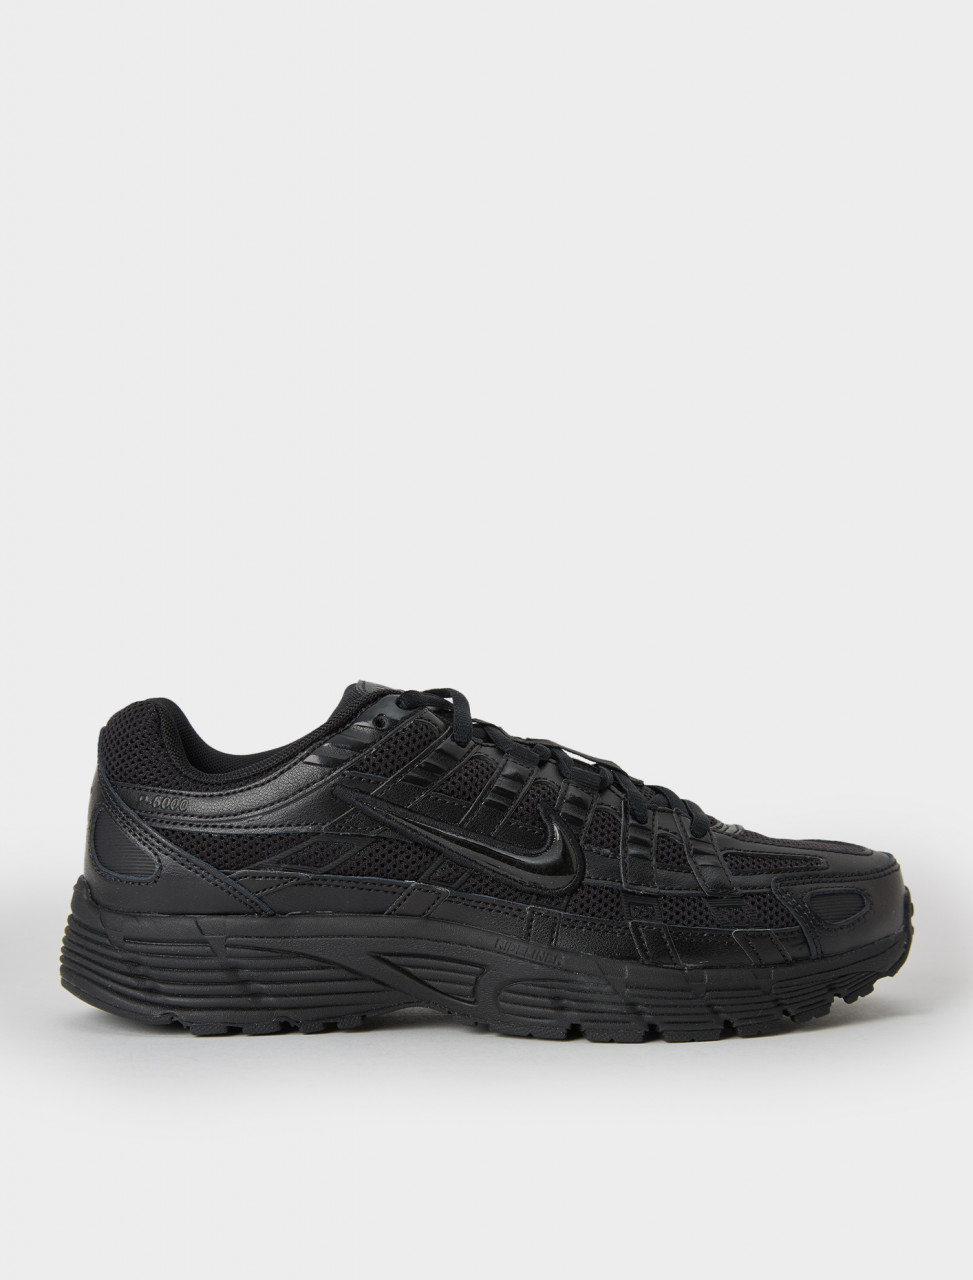 Nike P-6000 Sneaker in Black Swoosh